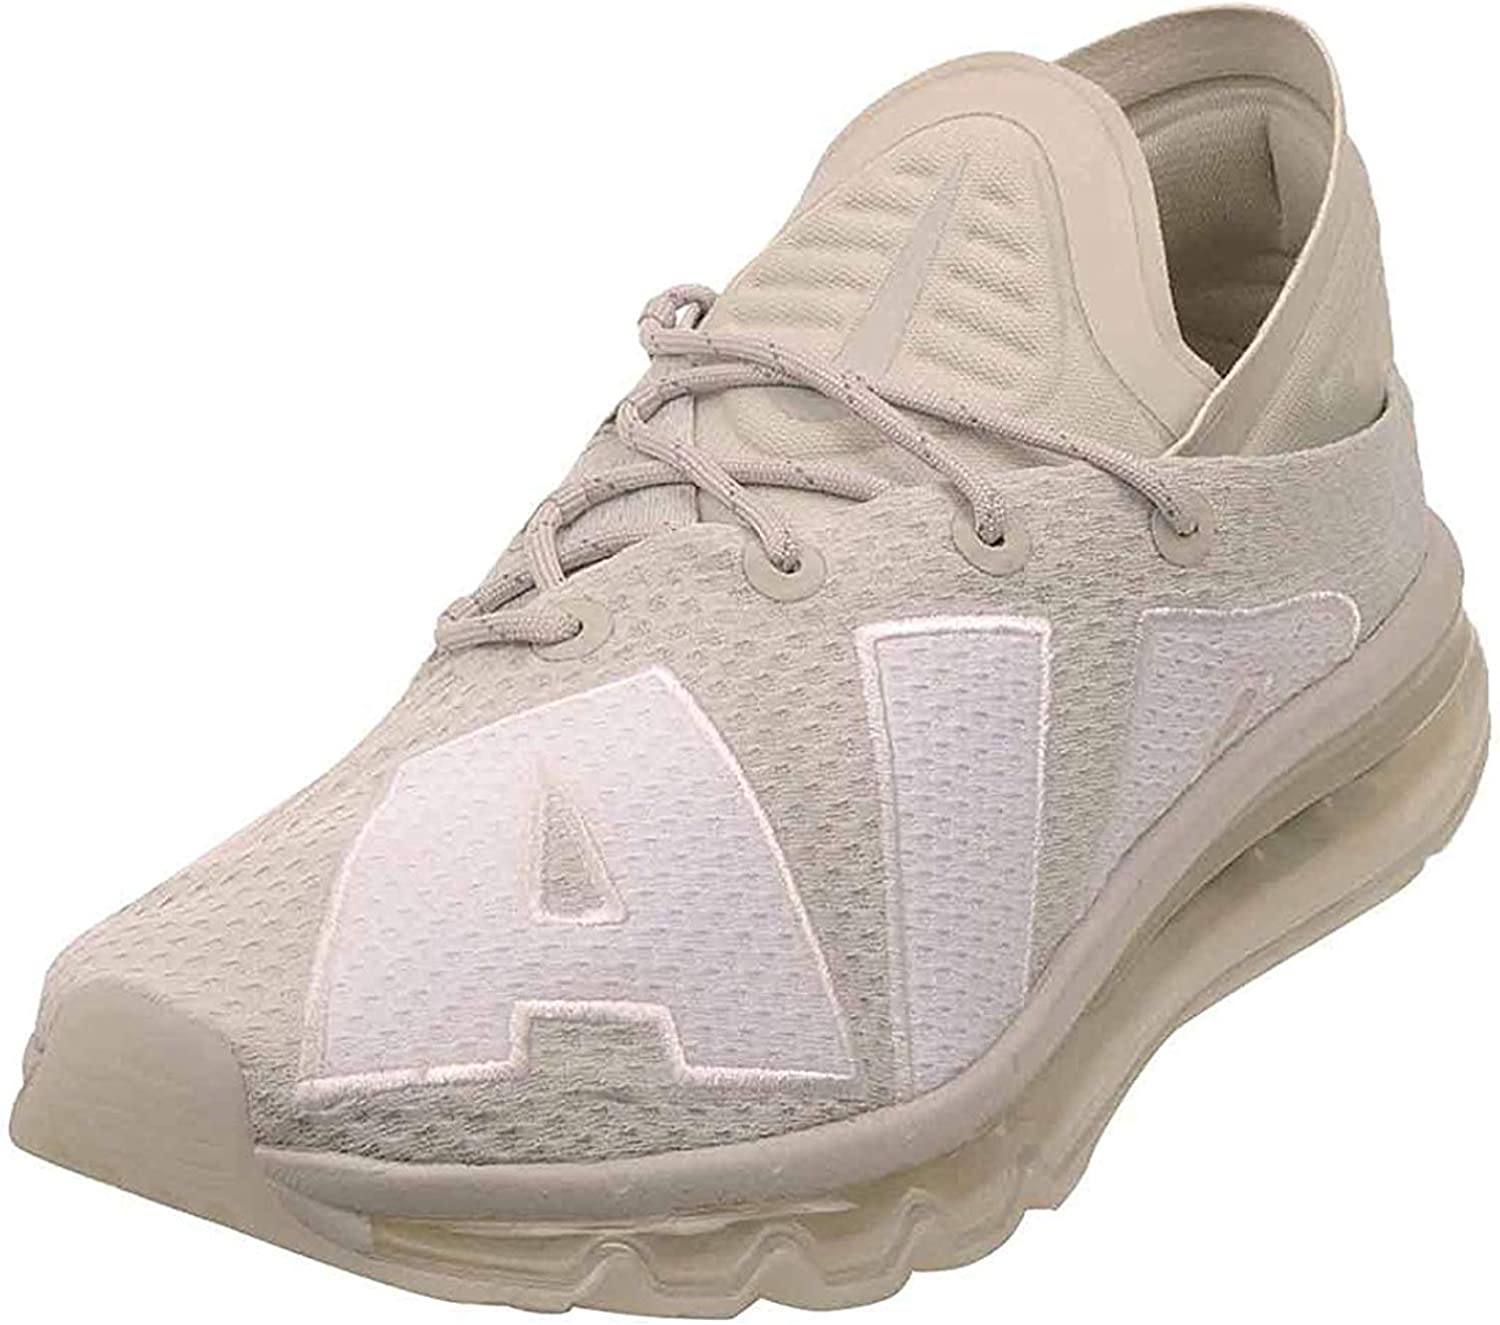 Nike Air Max Flaire 942236 005 Light